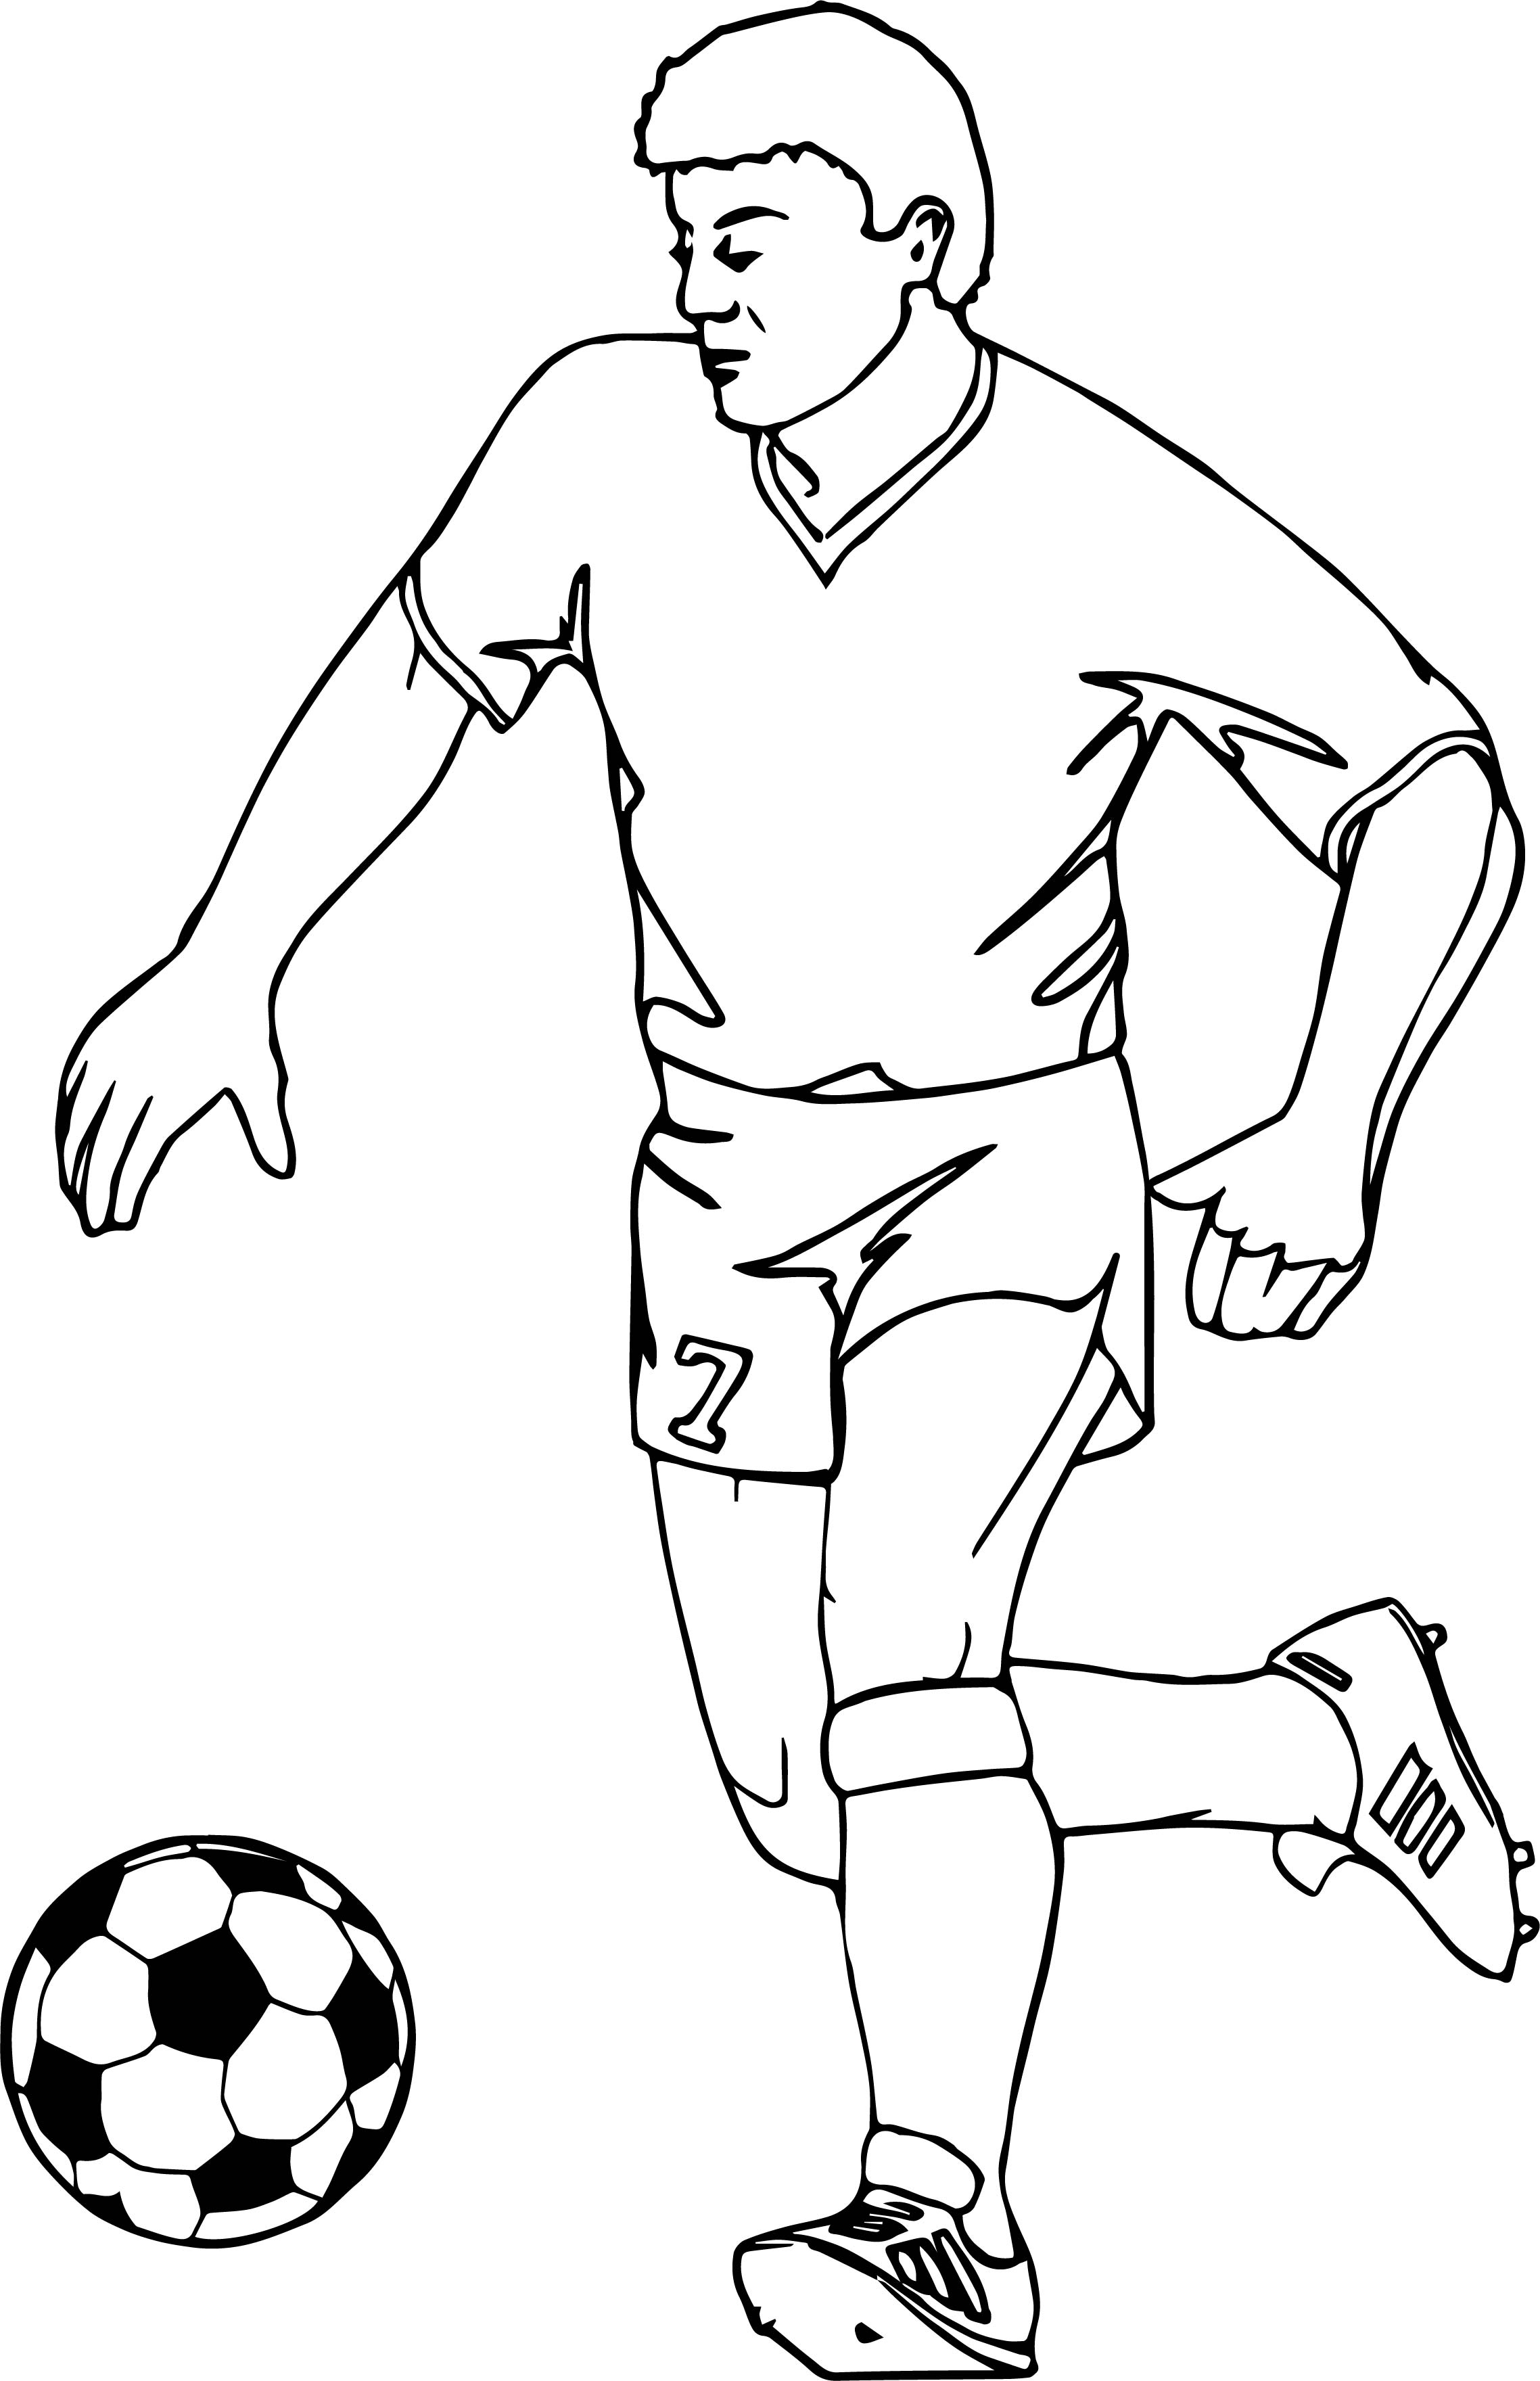 running football player playing soccer coloring page wecoloringpage